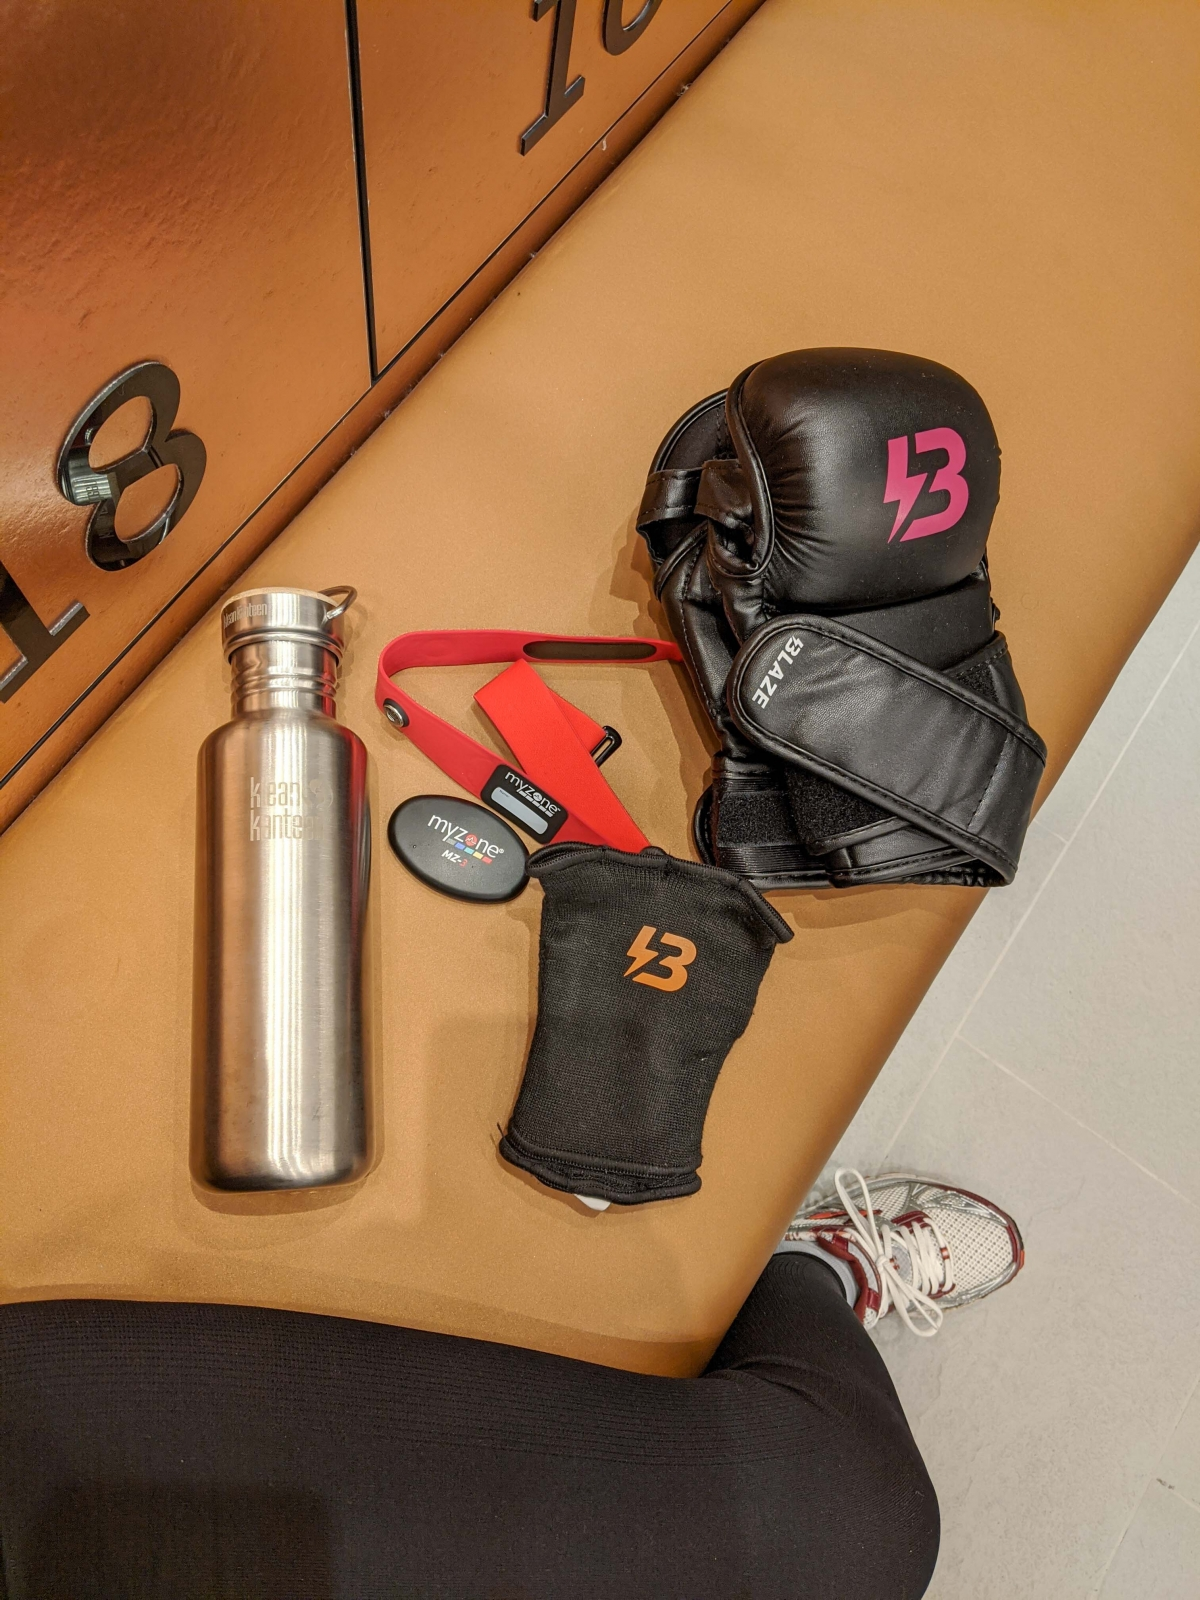 Equipment ready for a high intensity interval training classes